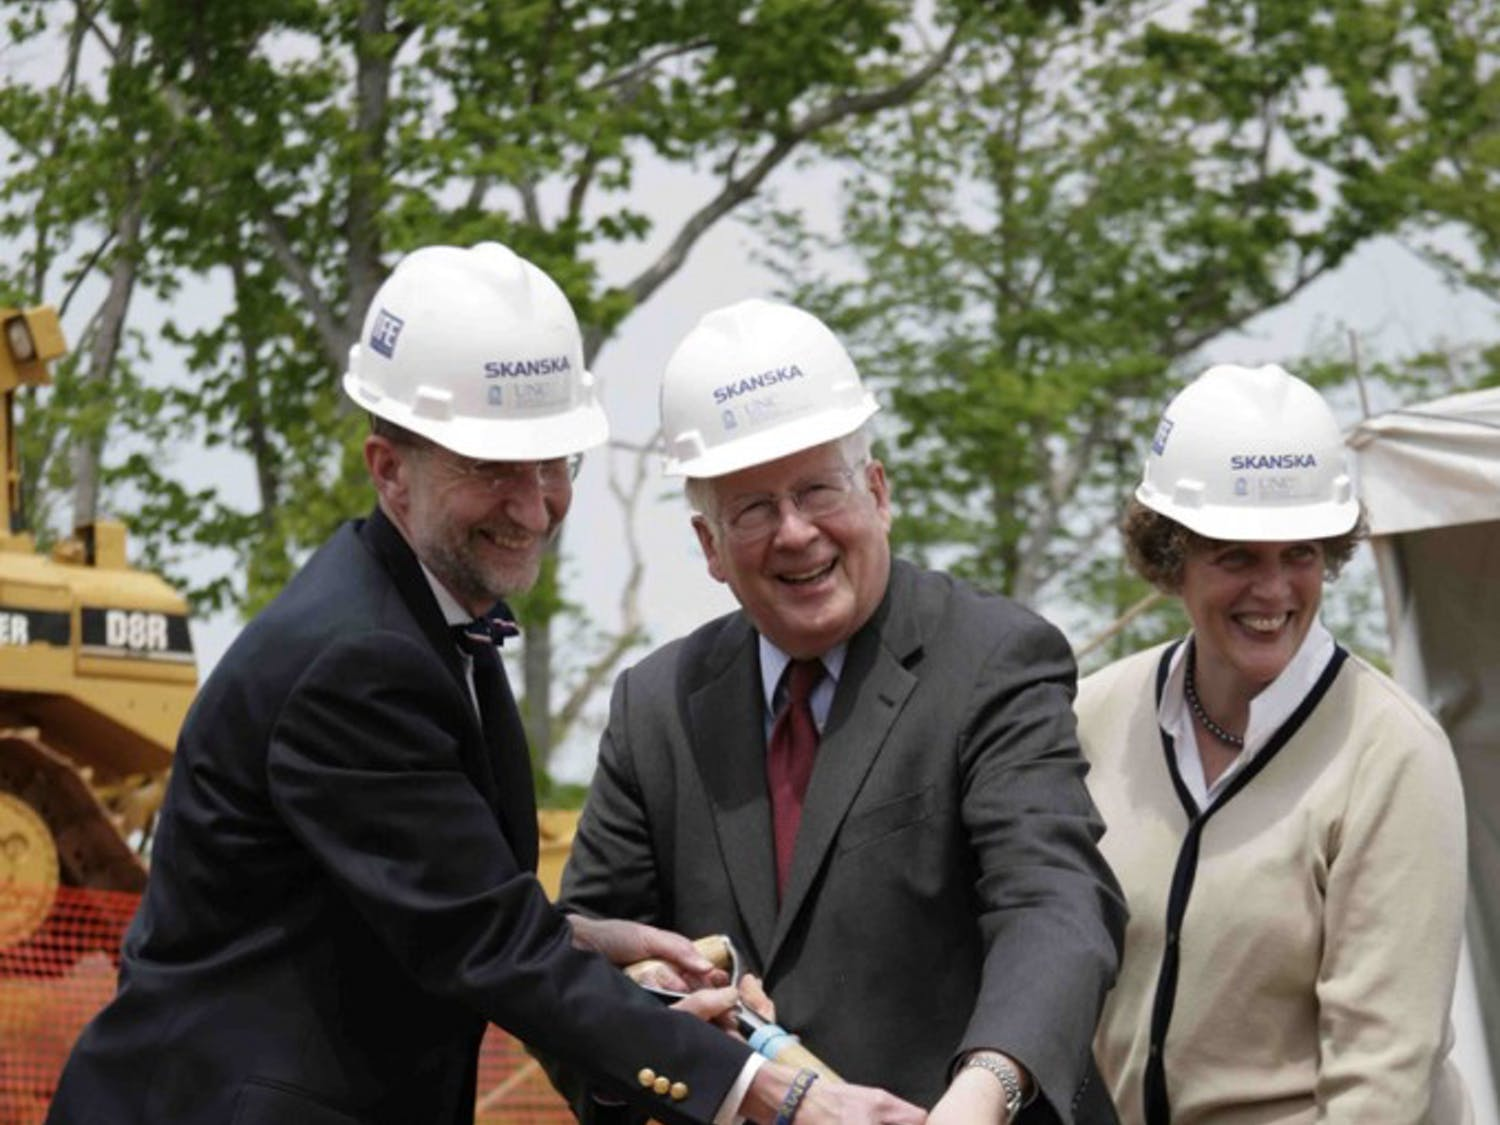 Dr. Bill Roper, CEO of UNC Health Care , and U.S. Rep. David Price, D-NC, share a shovel during the ceremonial ground breaking at the UNC Health Care Hillsborough Campus.